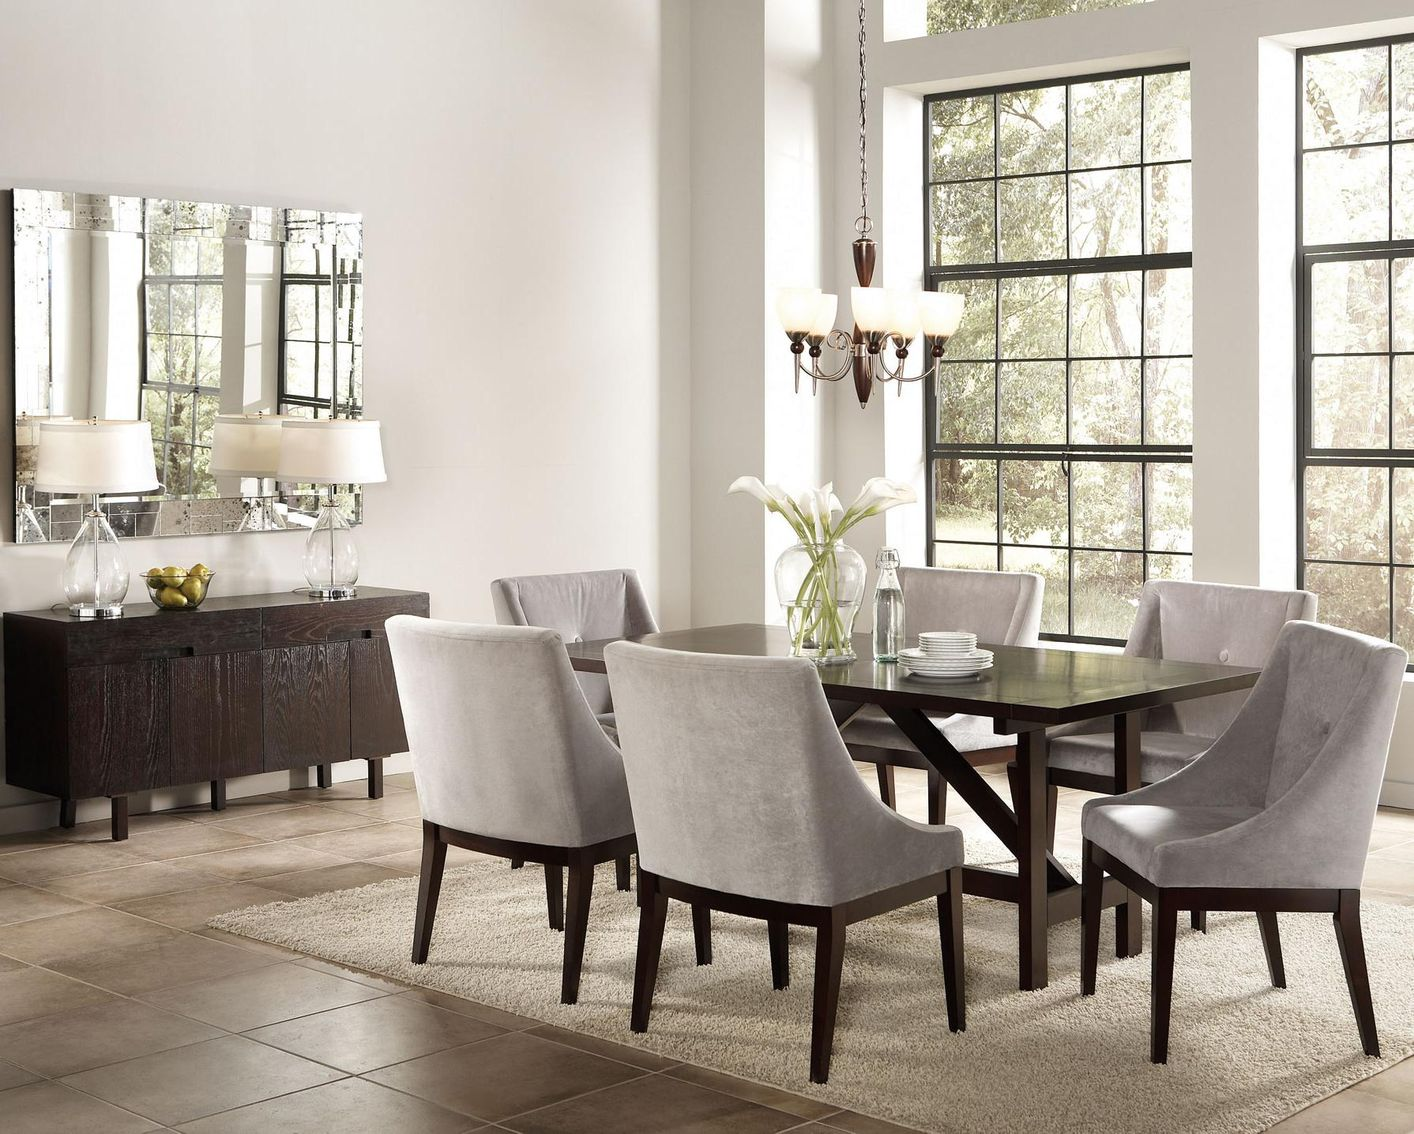 Coaster 102232 grey fabric accent chair steal a sofa furniture outlet los angeles ca - Grey dining room chair ...